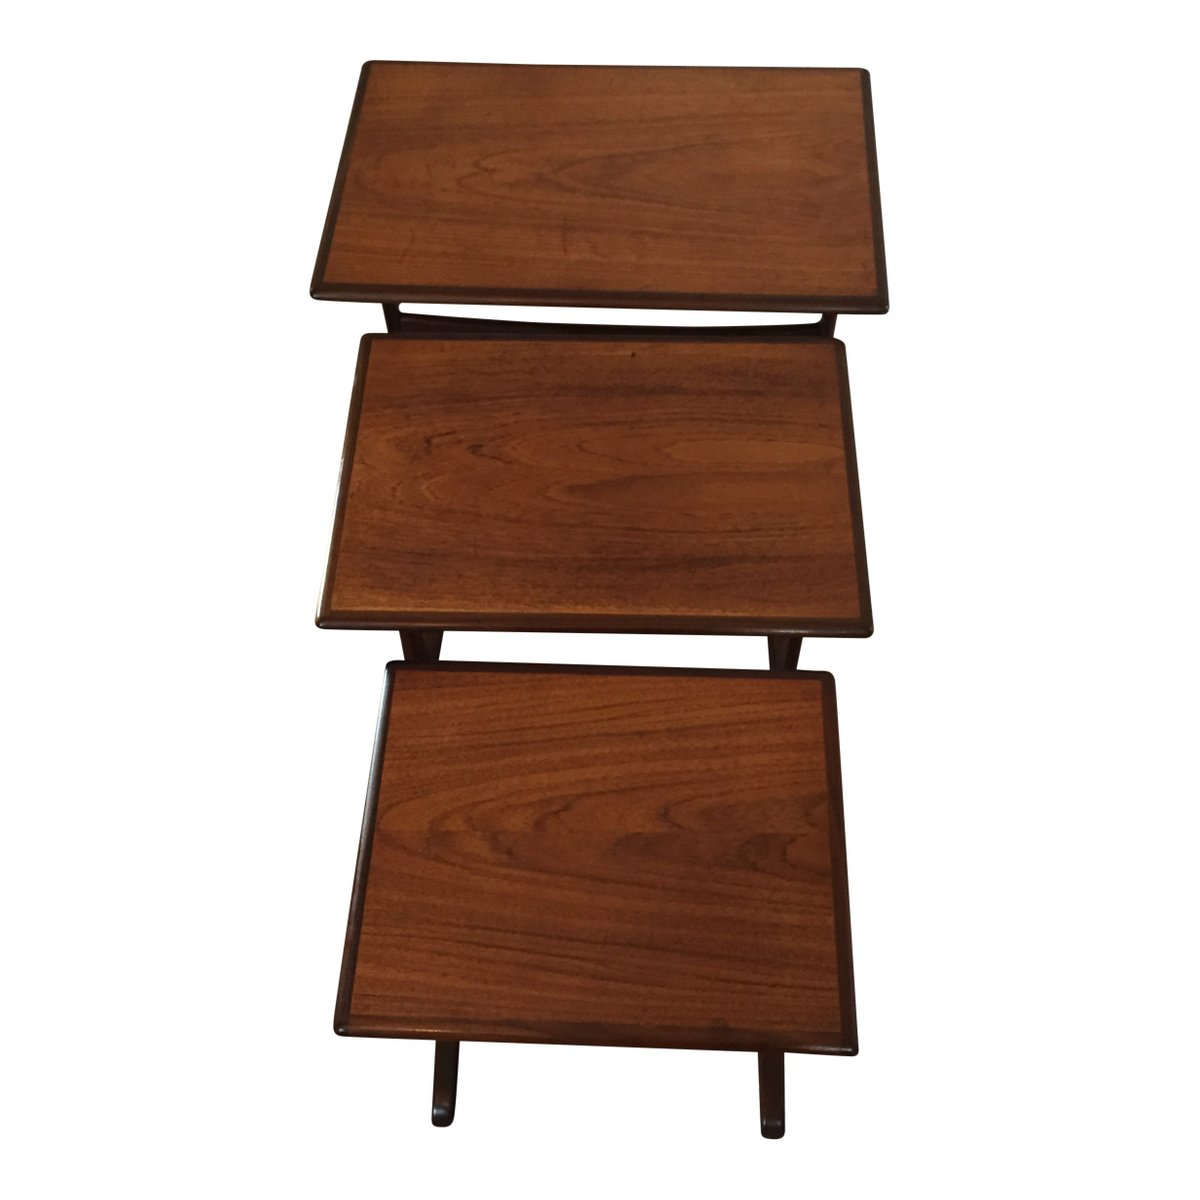 vintage teak satztische 3er set bei pamono kaufen. Black Bedroom Furniture Sets. Home Design Ideas